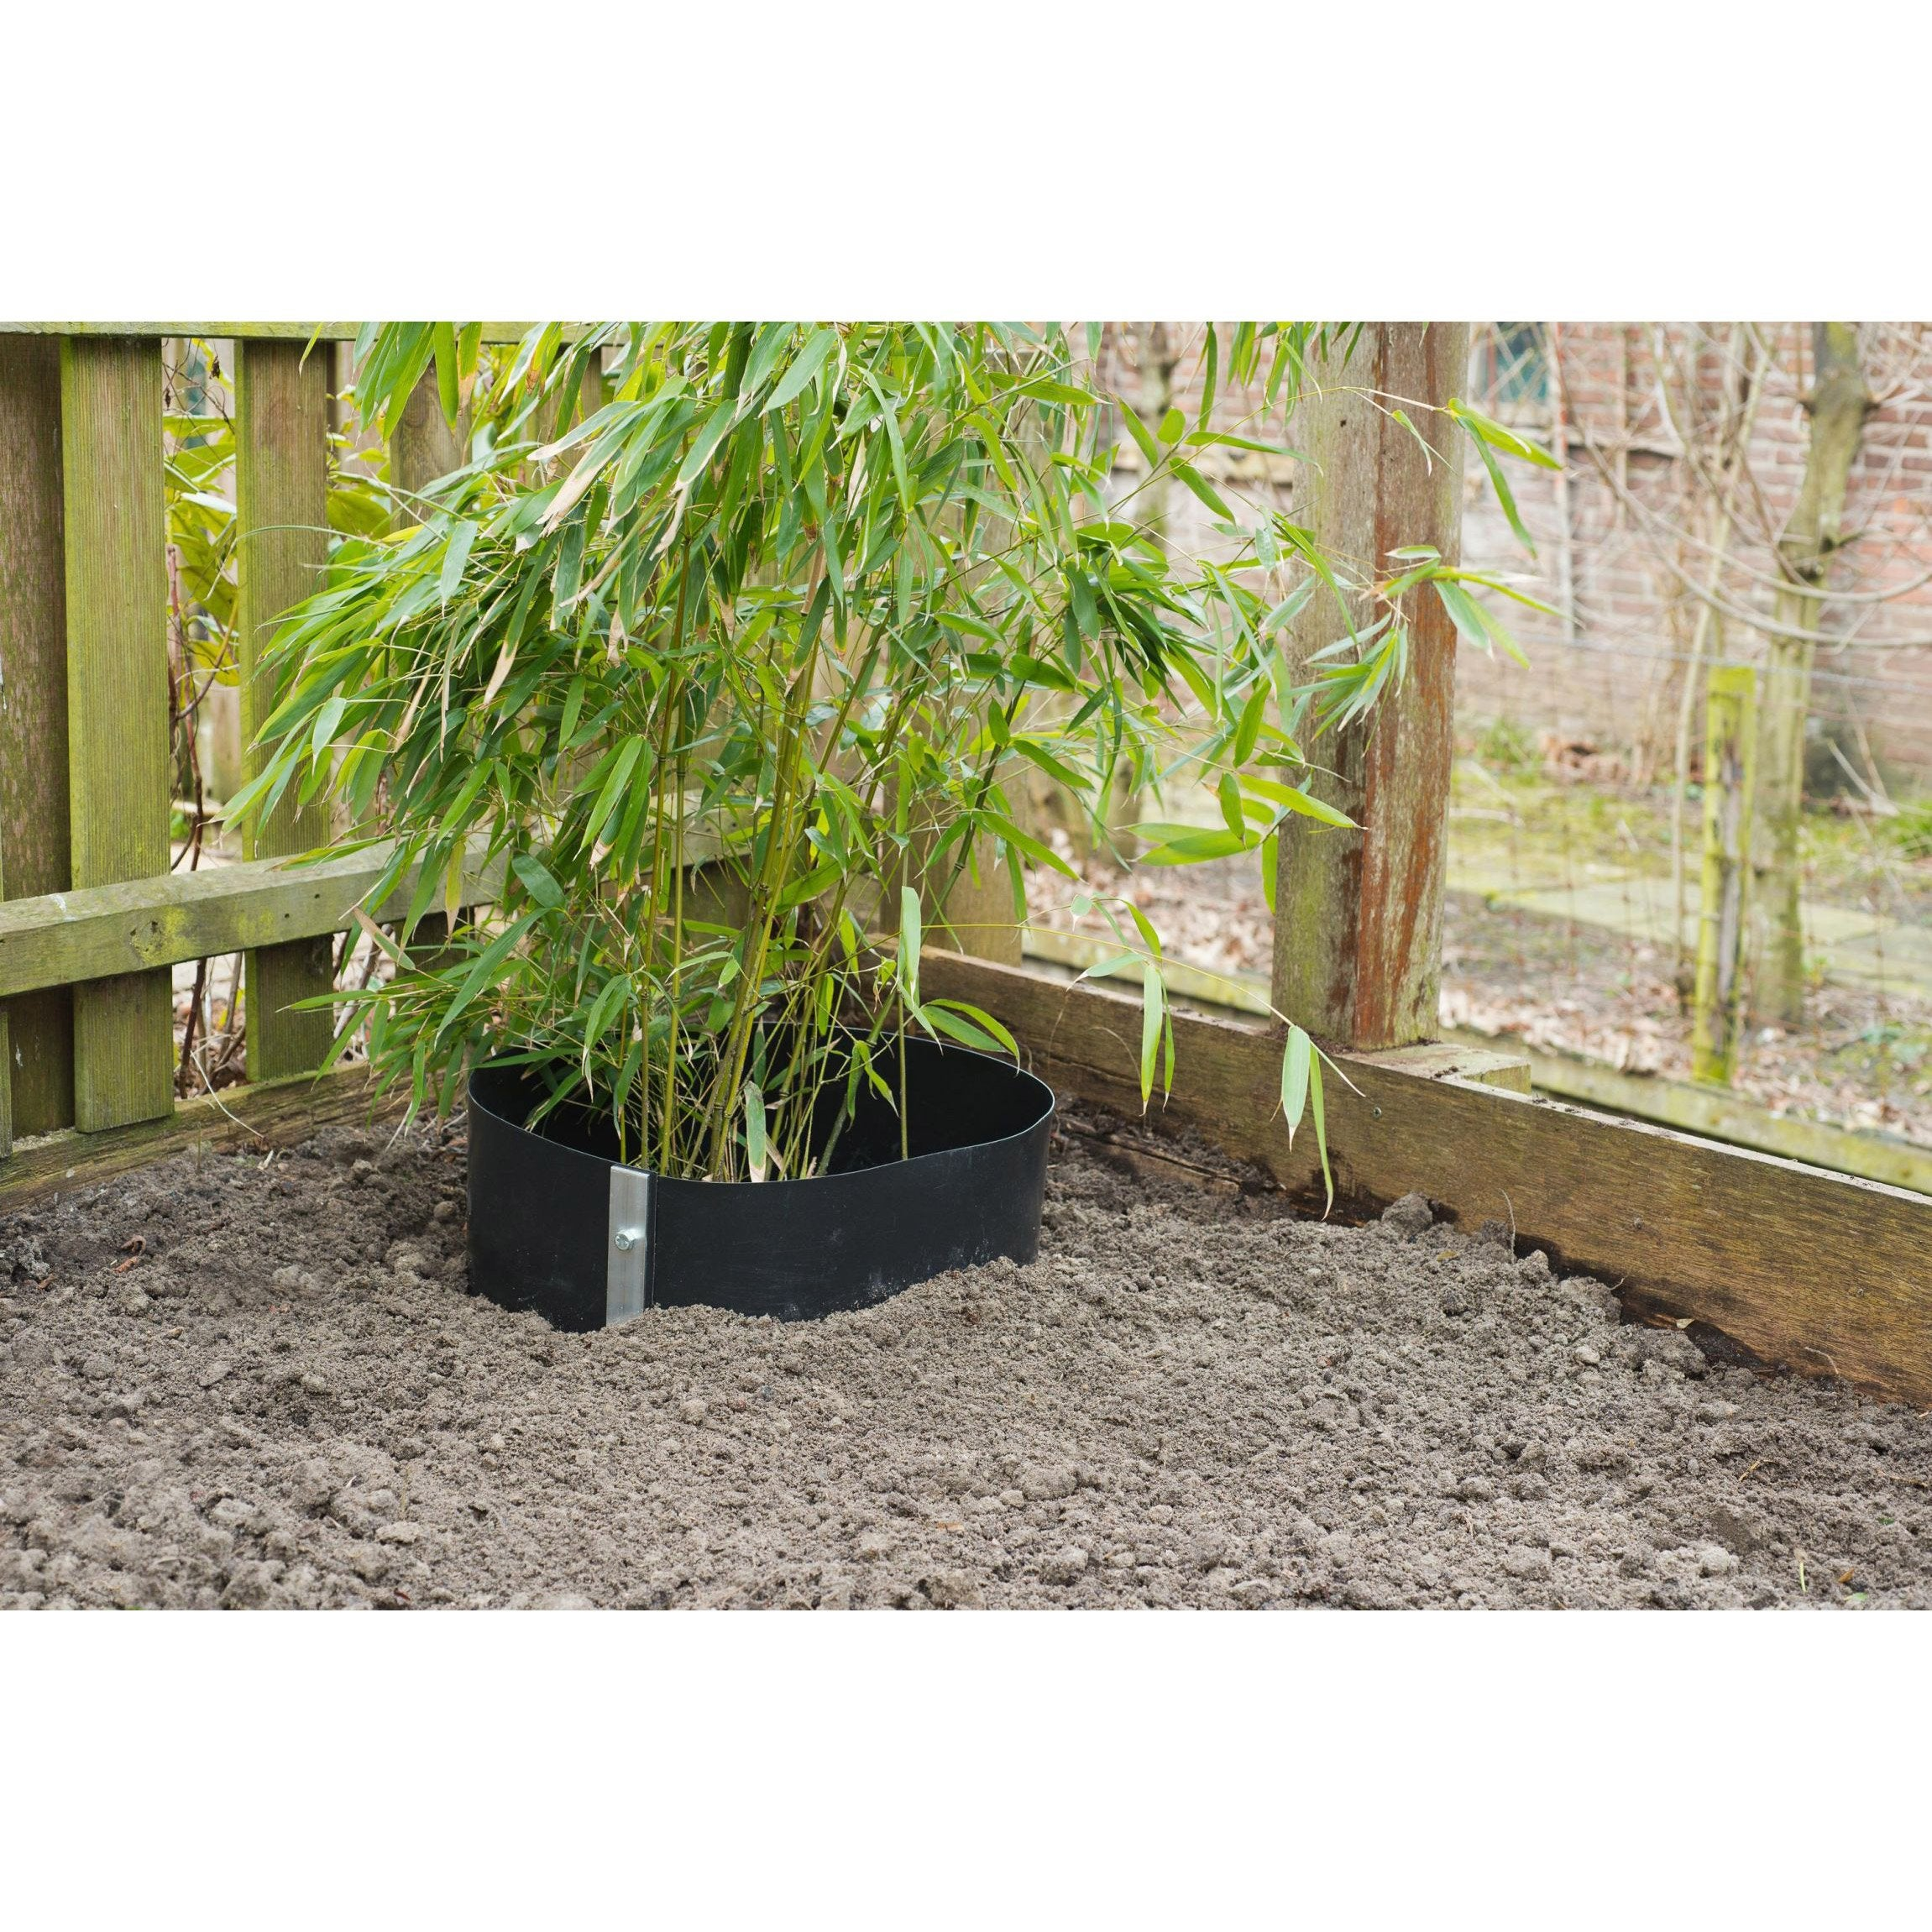 Barriere Antiracines Nature 1000 G M H70cm X 5 M Products En 2019 Barriere Anti Rhizome Rhizome Bambou Et Bambou